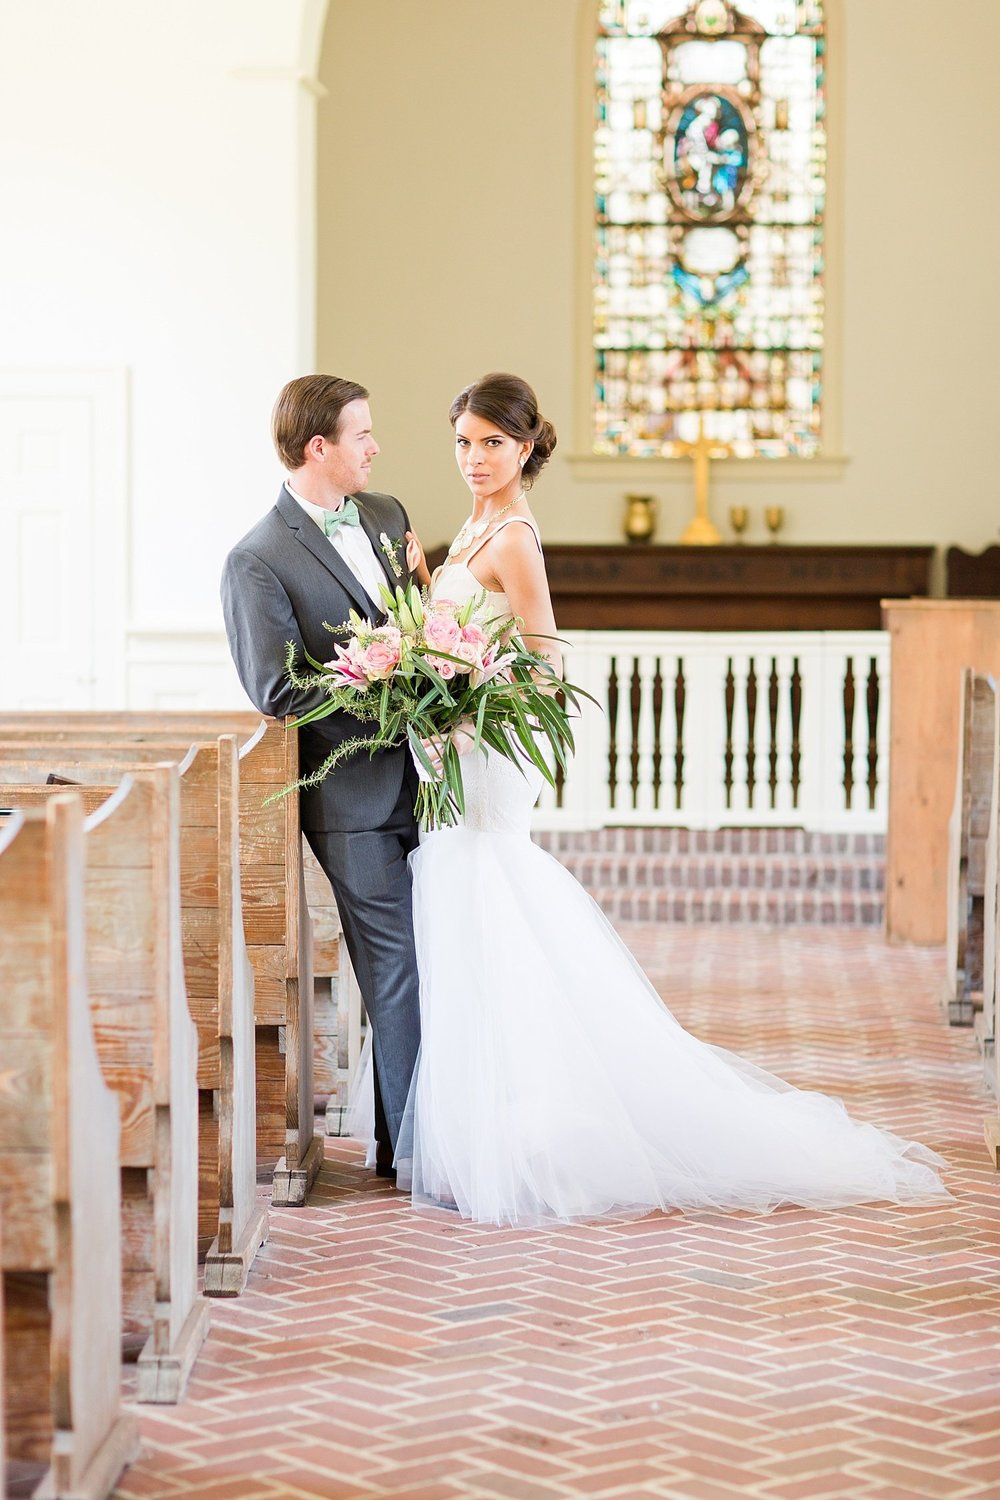 rachel-strickland-photography-katie-may-ivory-and-beau-bridal-boutique-bethesda-academy-wedding-whitfield-chapel-wedding-savannah-bridal-boutique-savannah-weddings-savannah-wedding-savannah-wedding-planner-savannah-bridal-gowns-savannah-bride-8.jpg